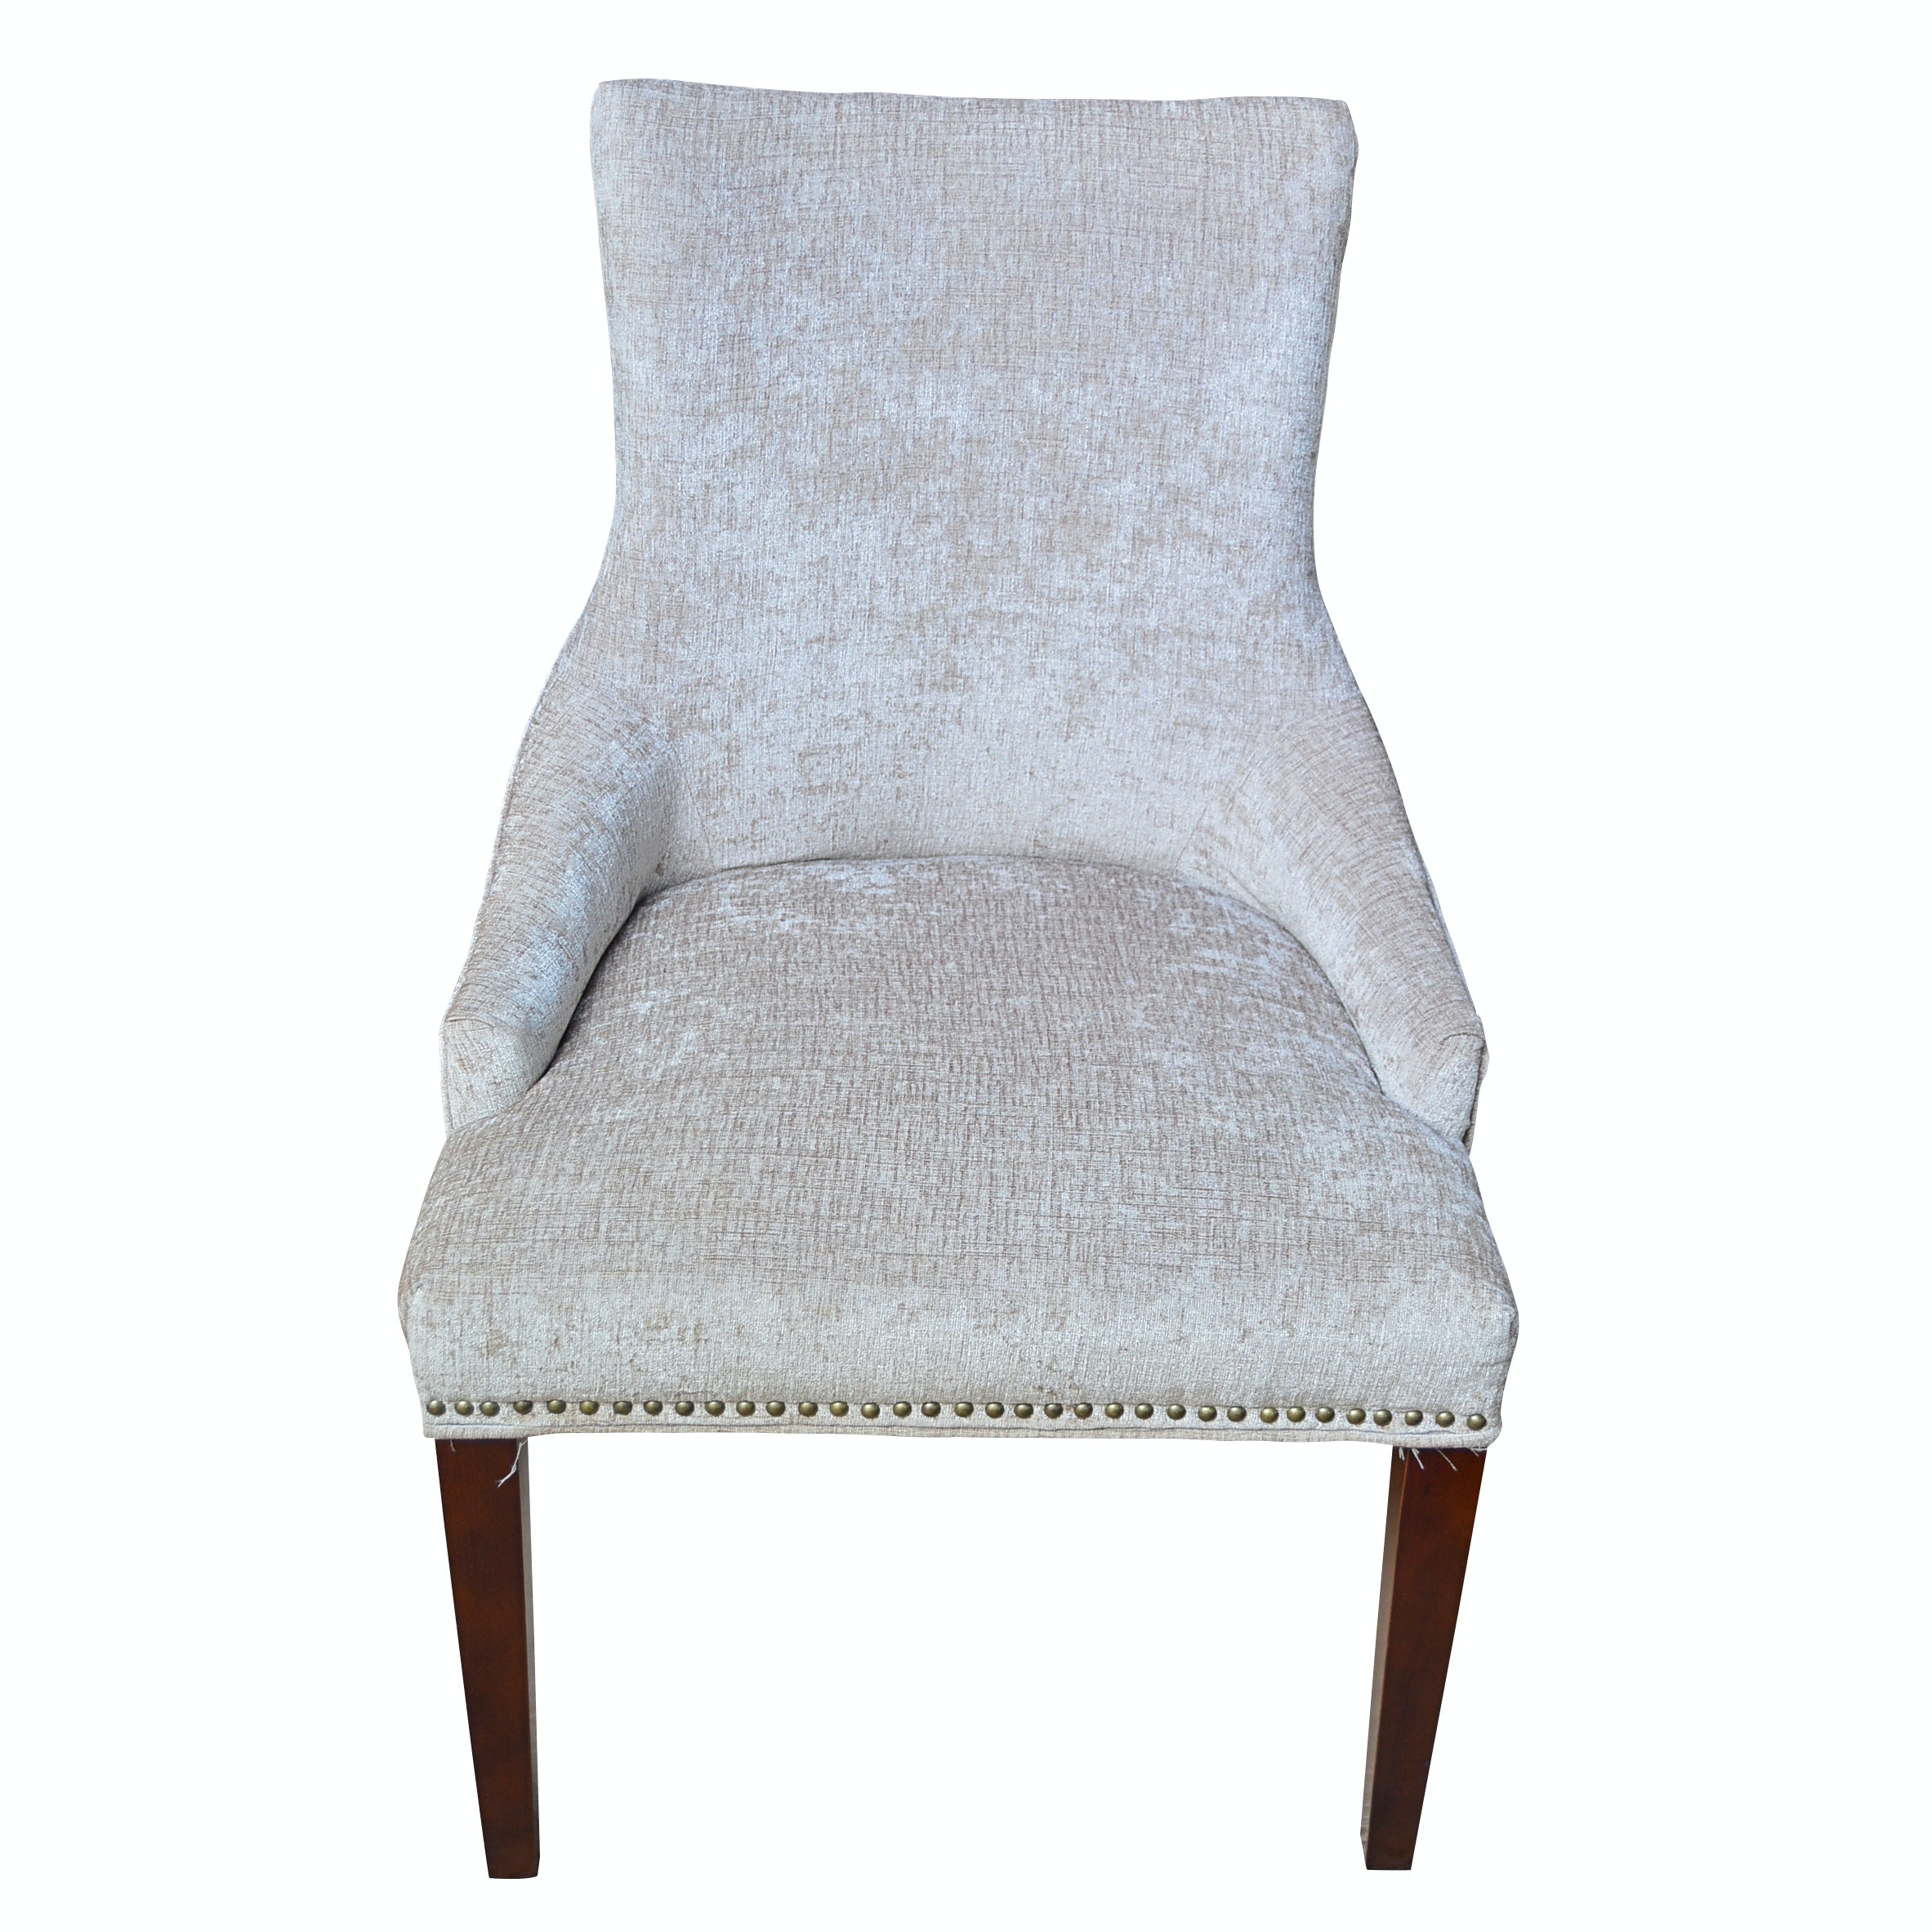 Neoclassic Style Side Chair